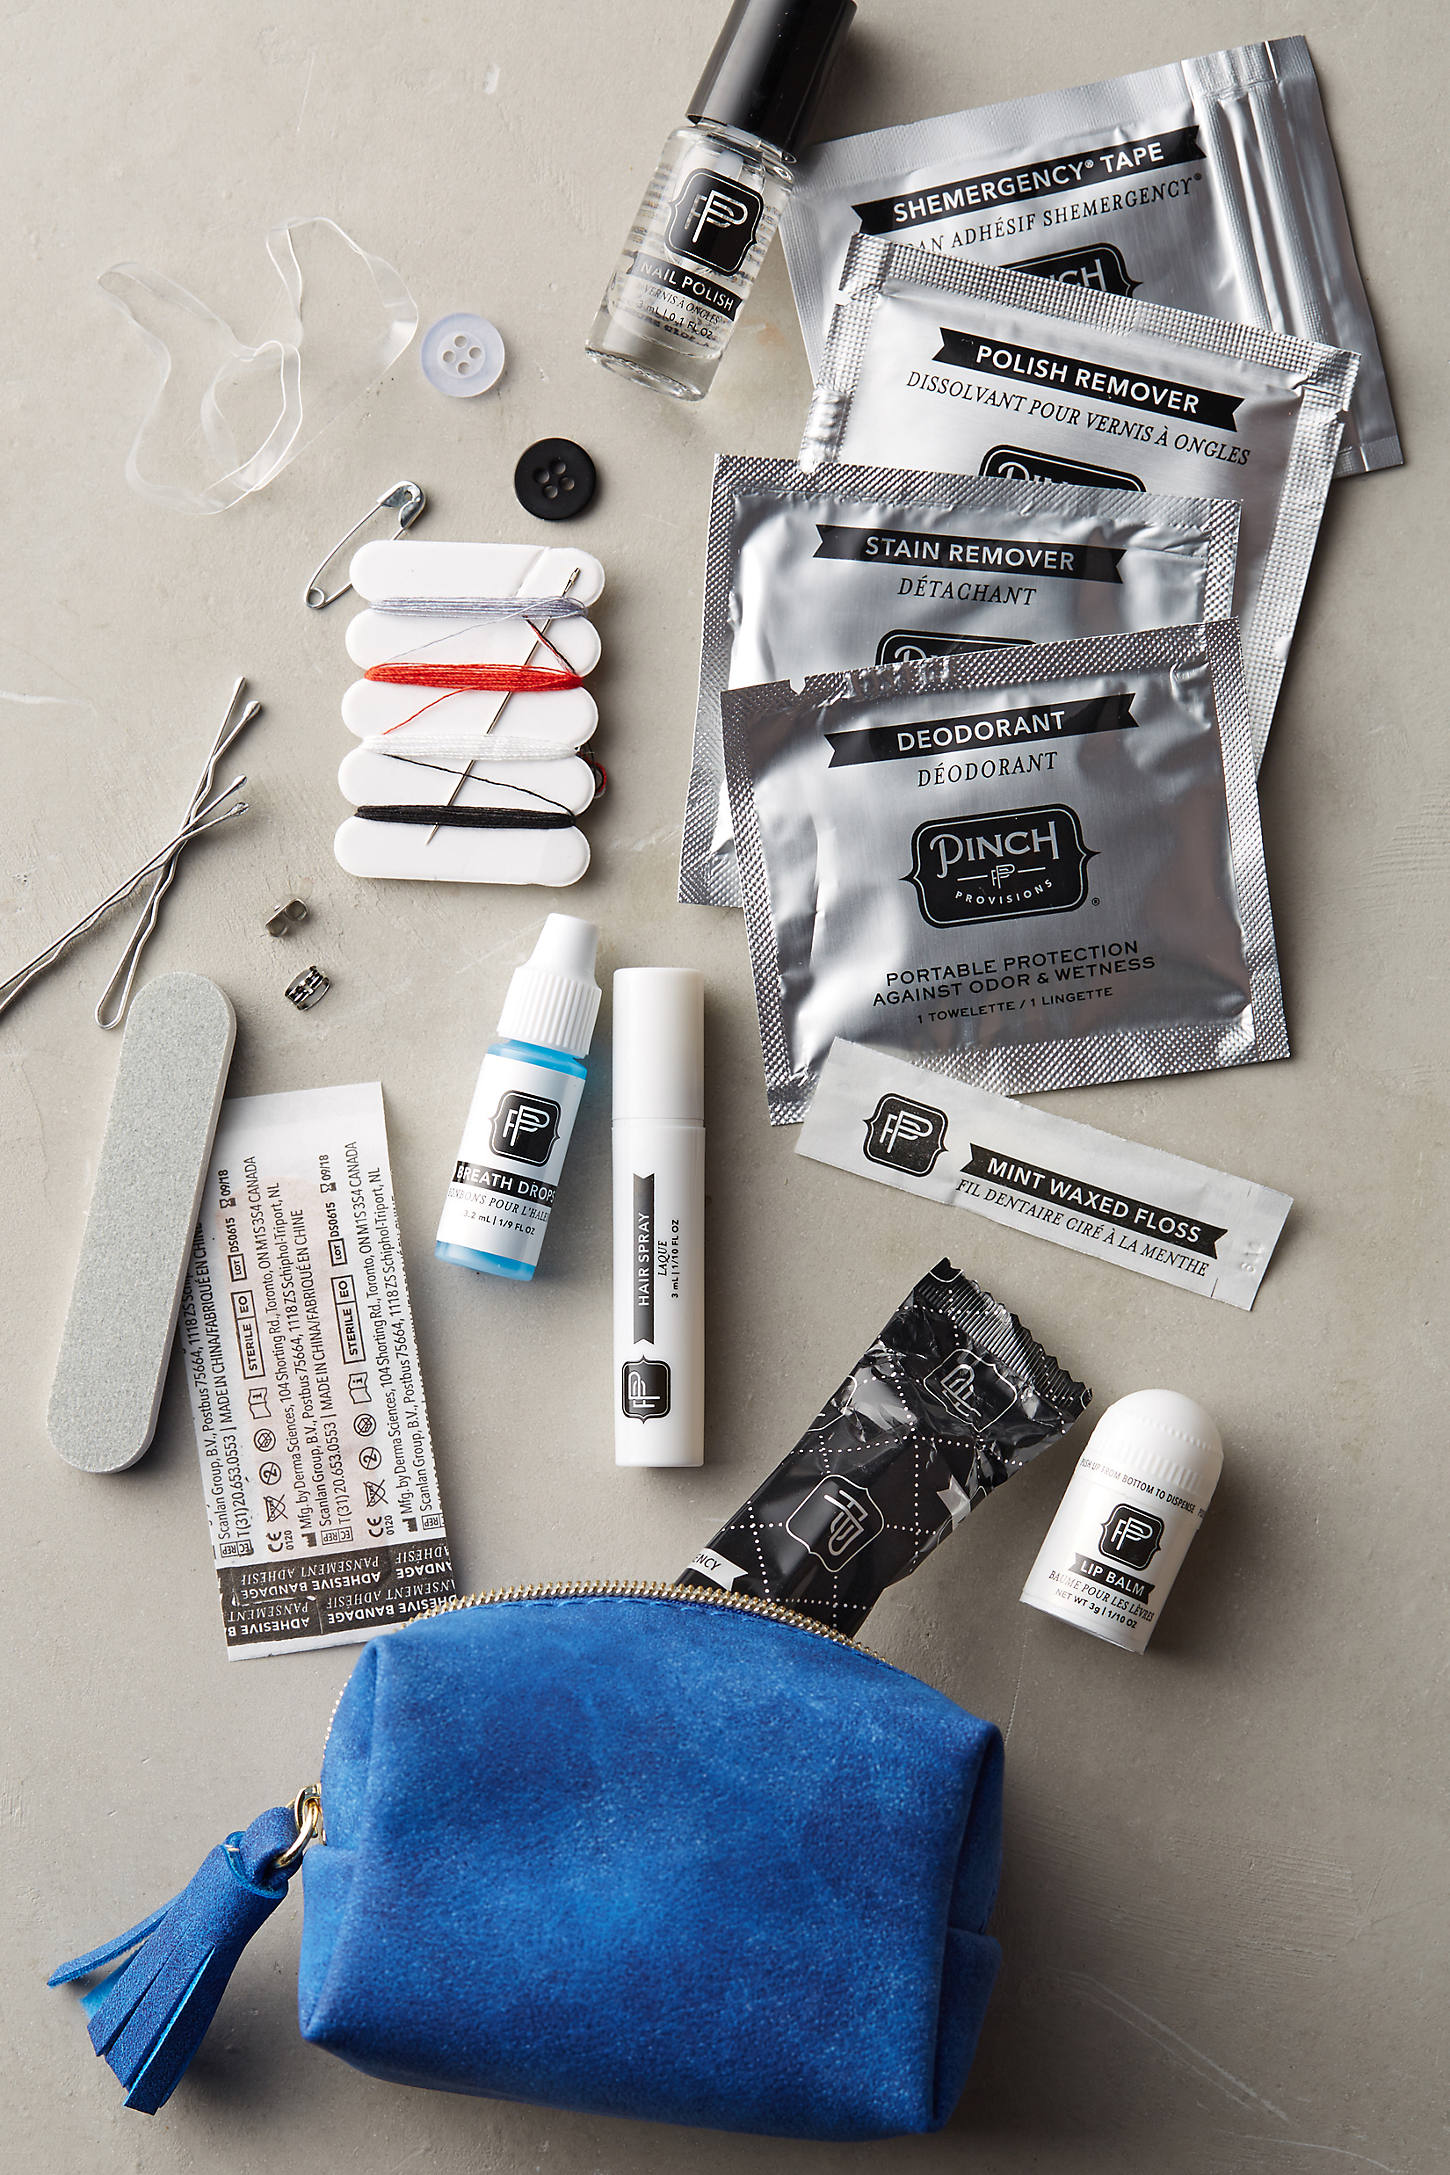 Pinch Provisions Mini Emergency Kit